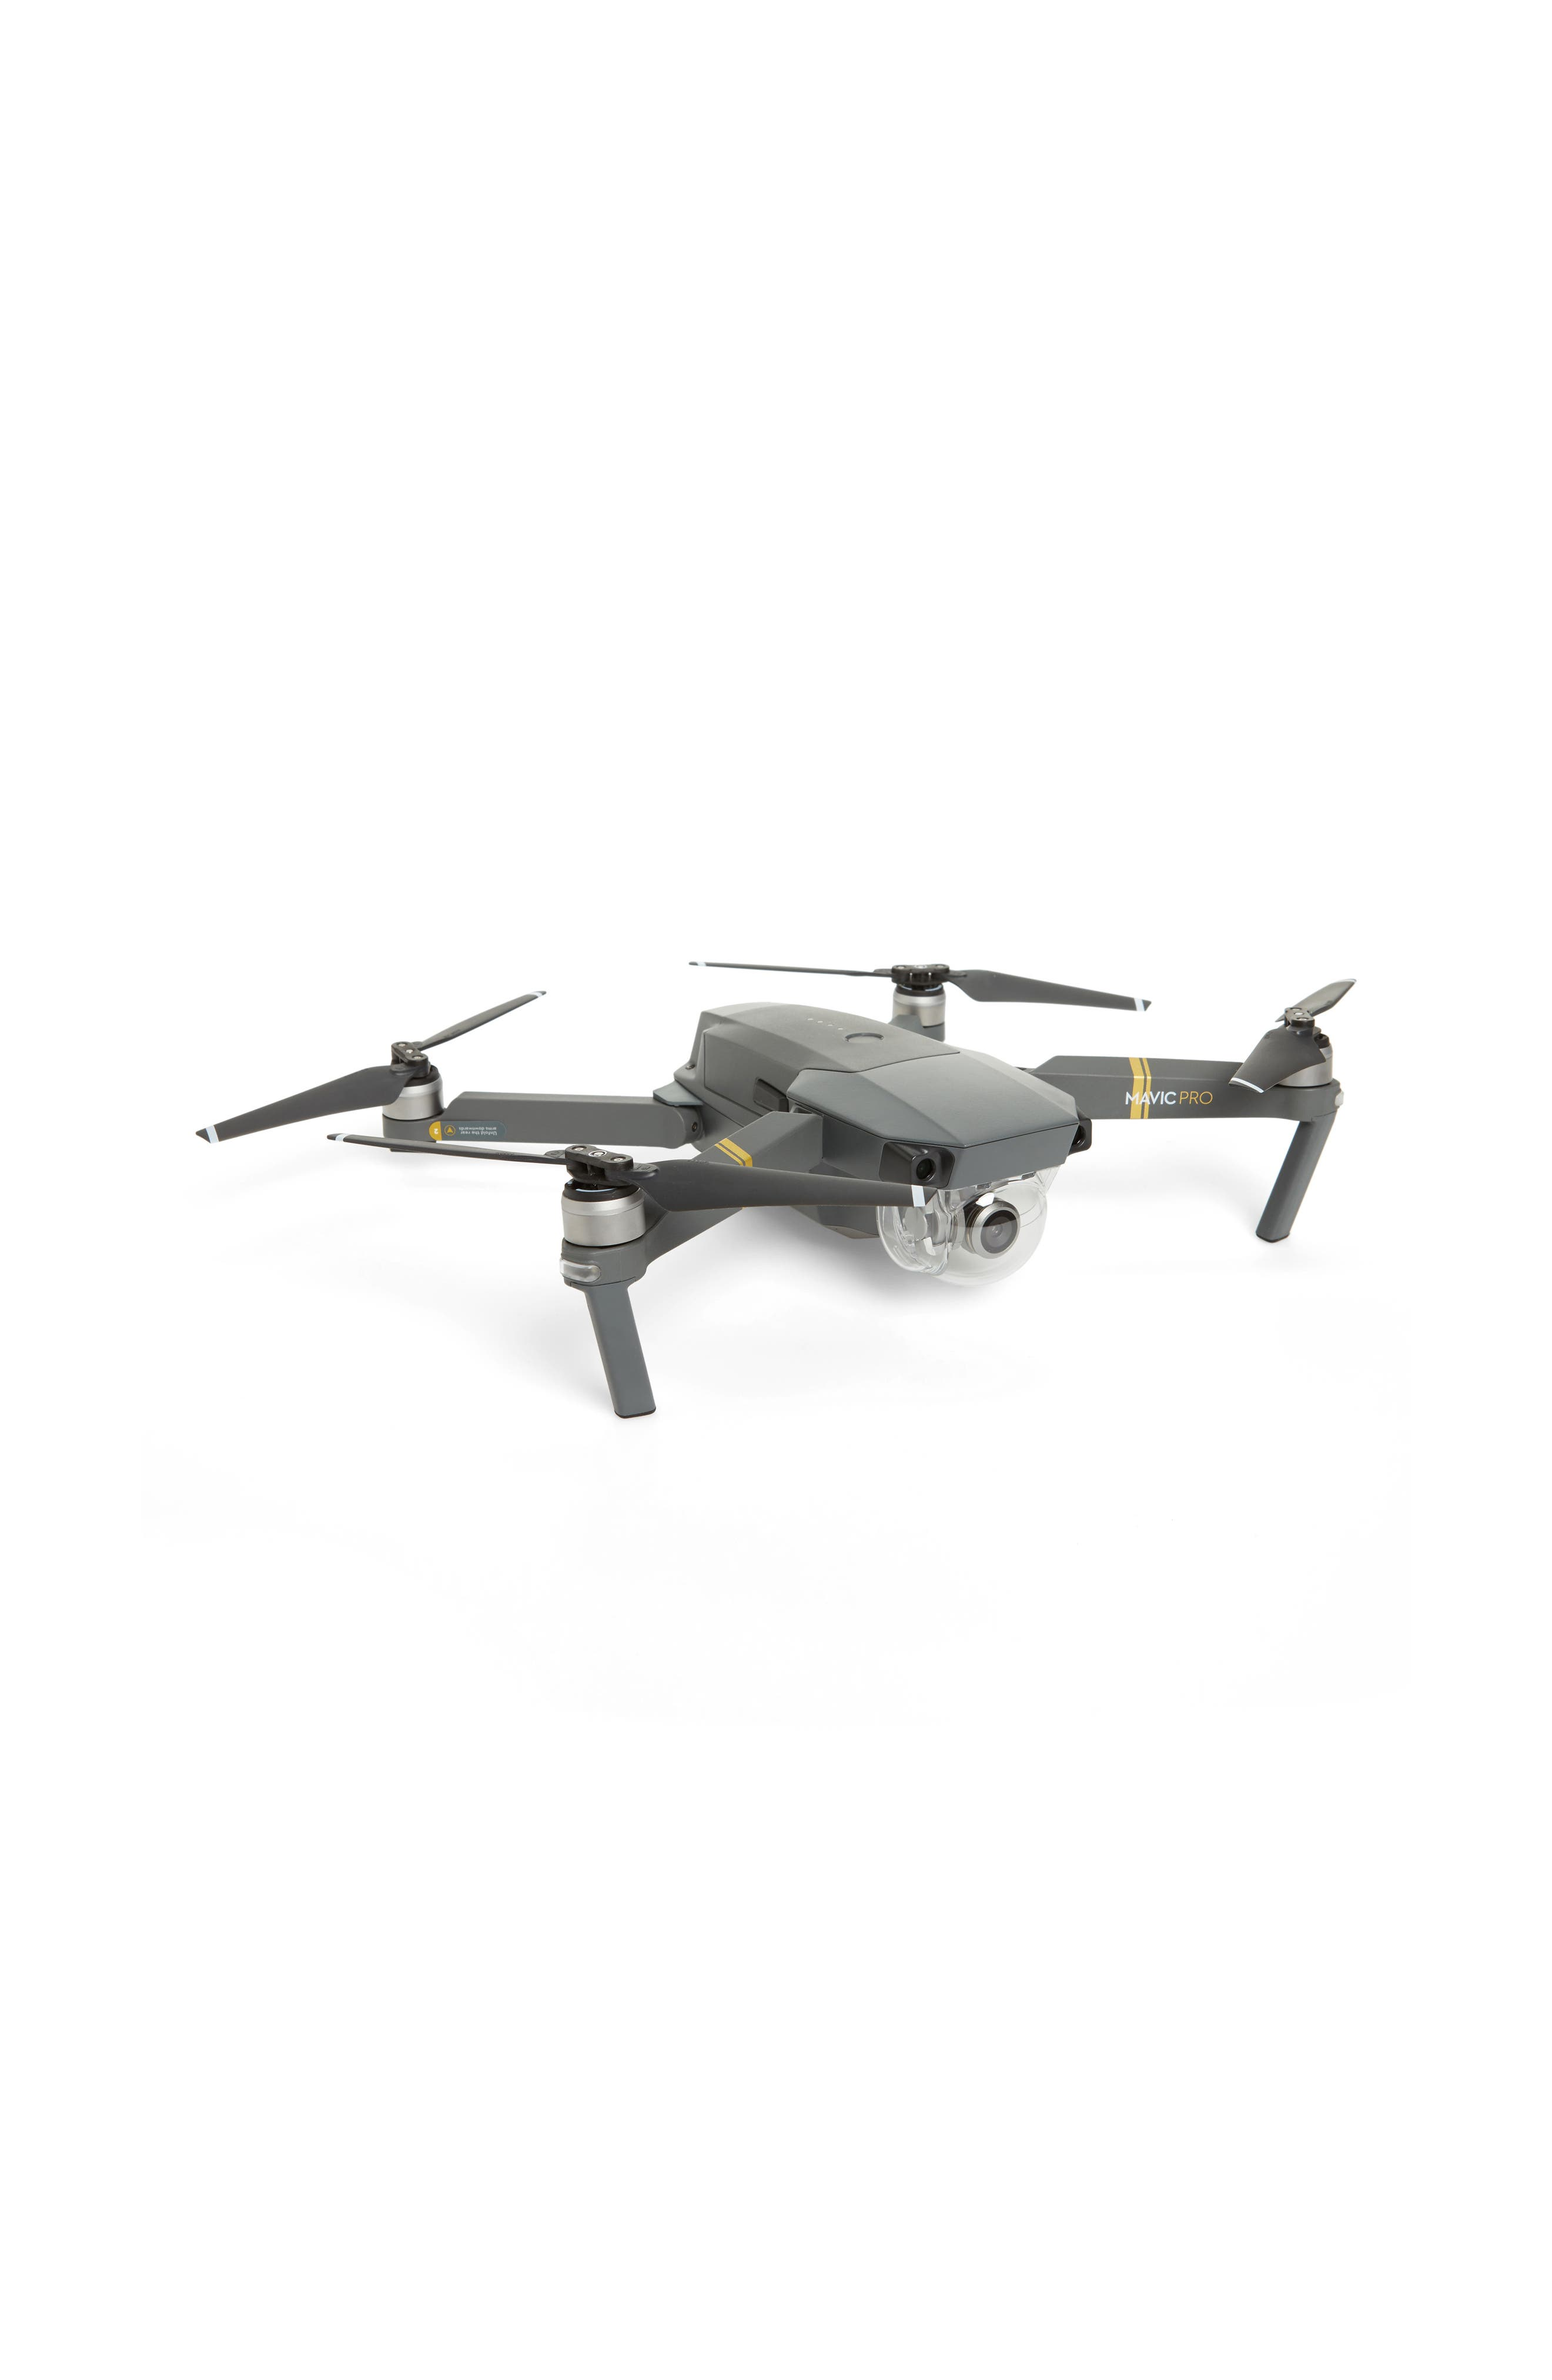 Mavic Pro Fly More Combo Foldable Flying Quadcopter,                         Main,                         color, Grey